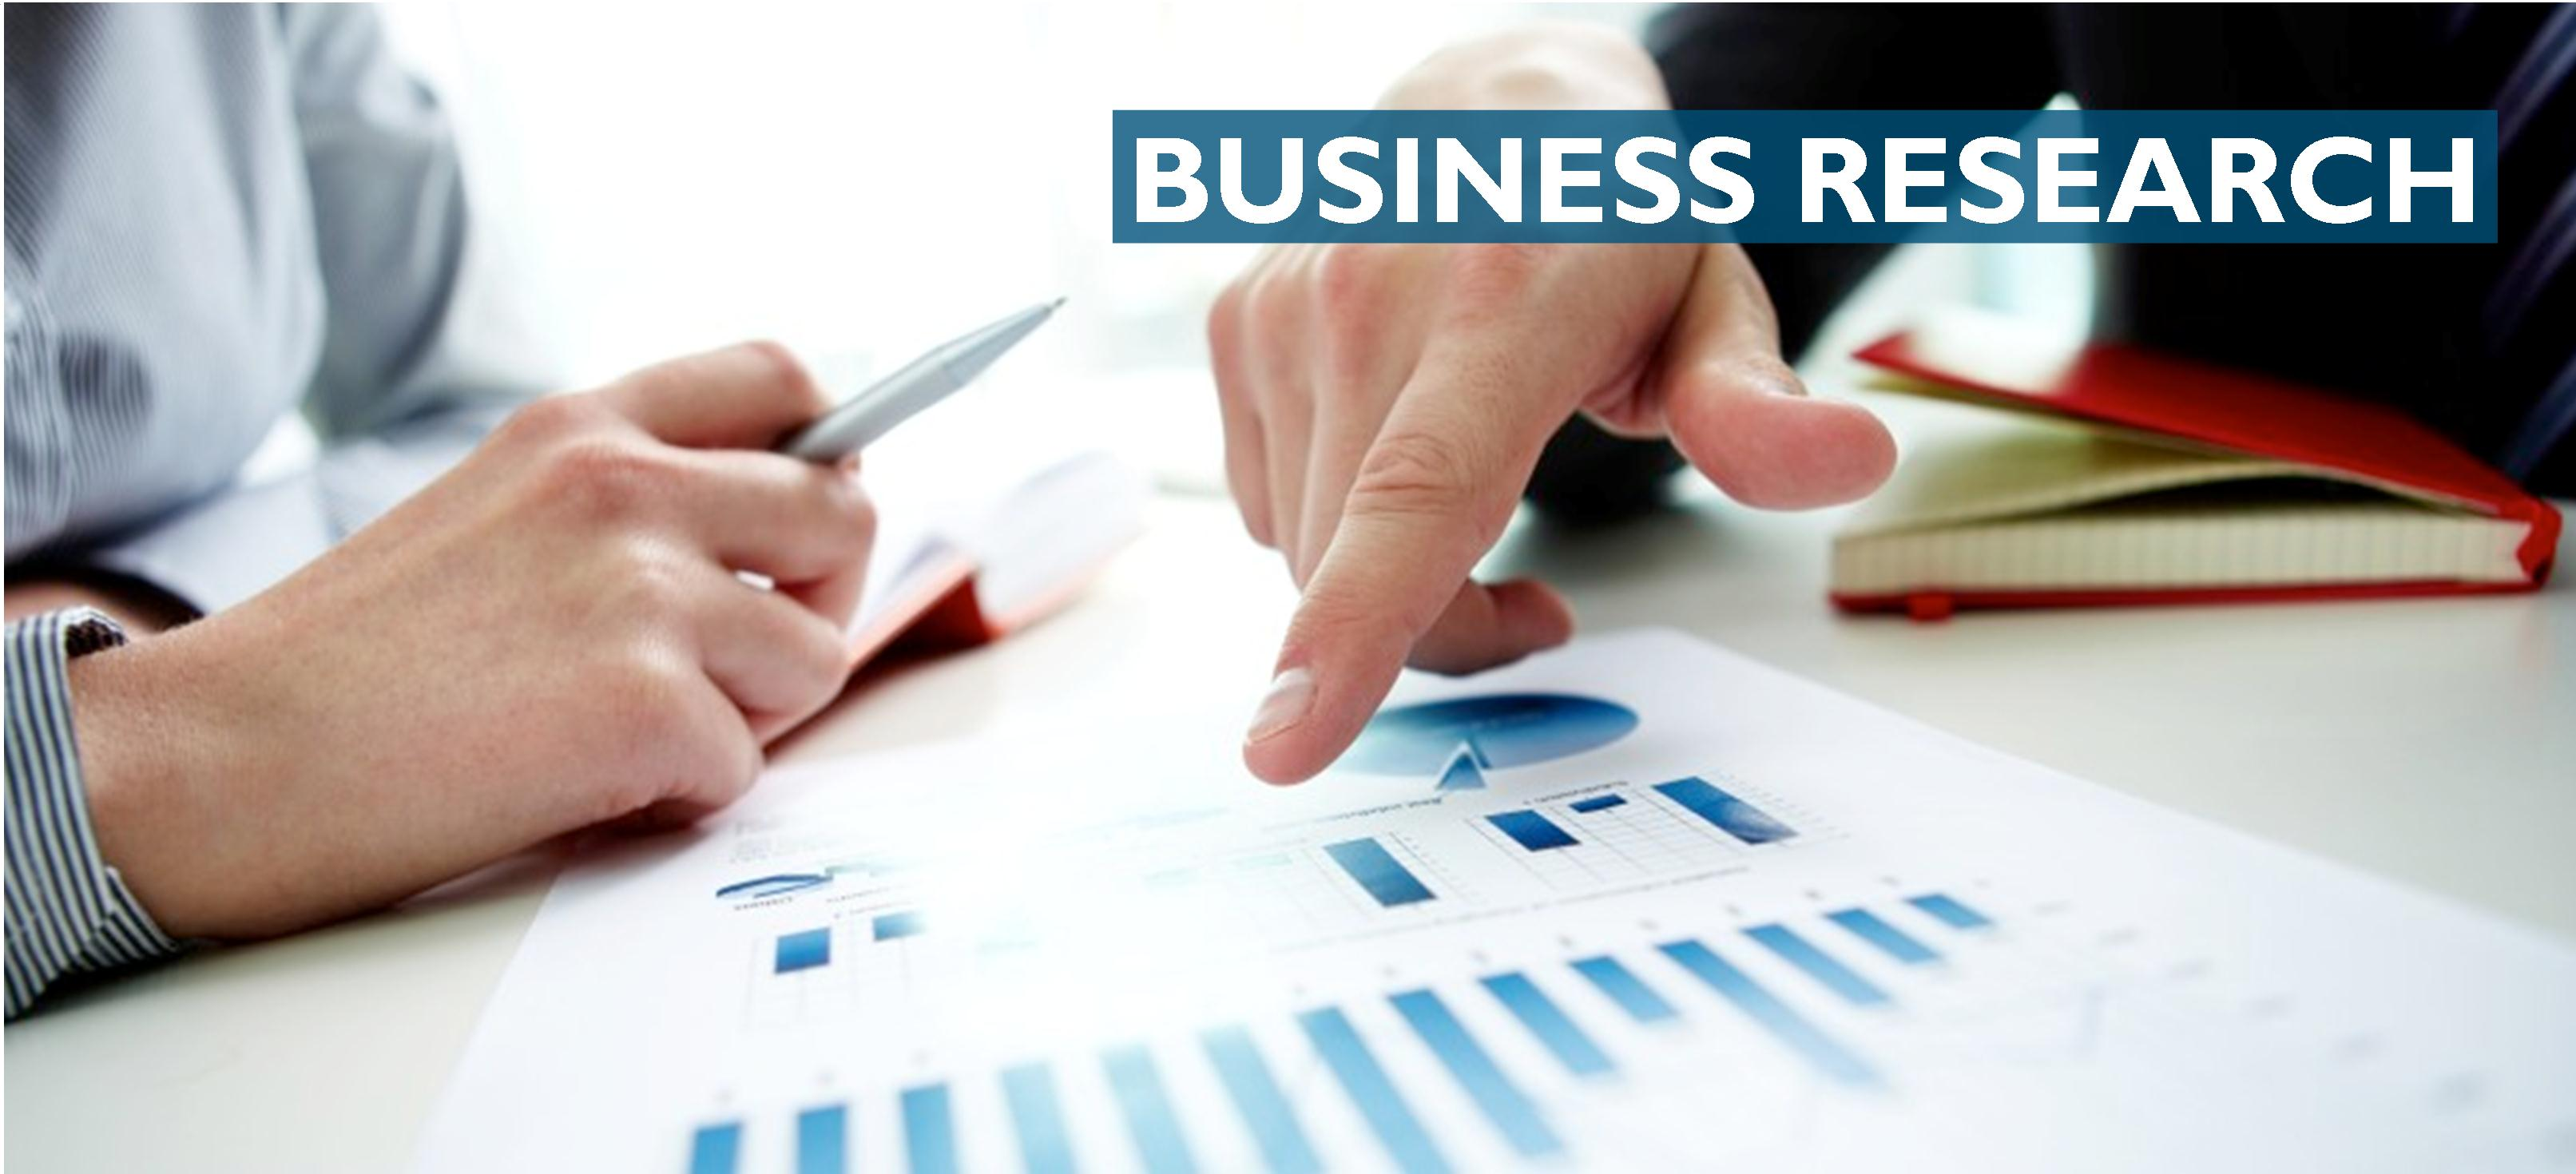 Business Research Services In Kenya- 2Max Solutions Limited